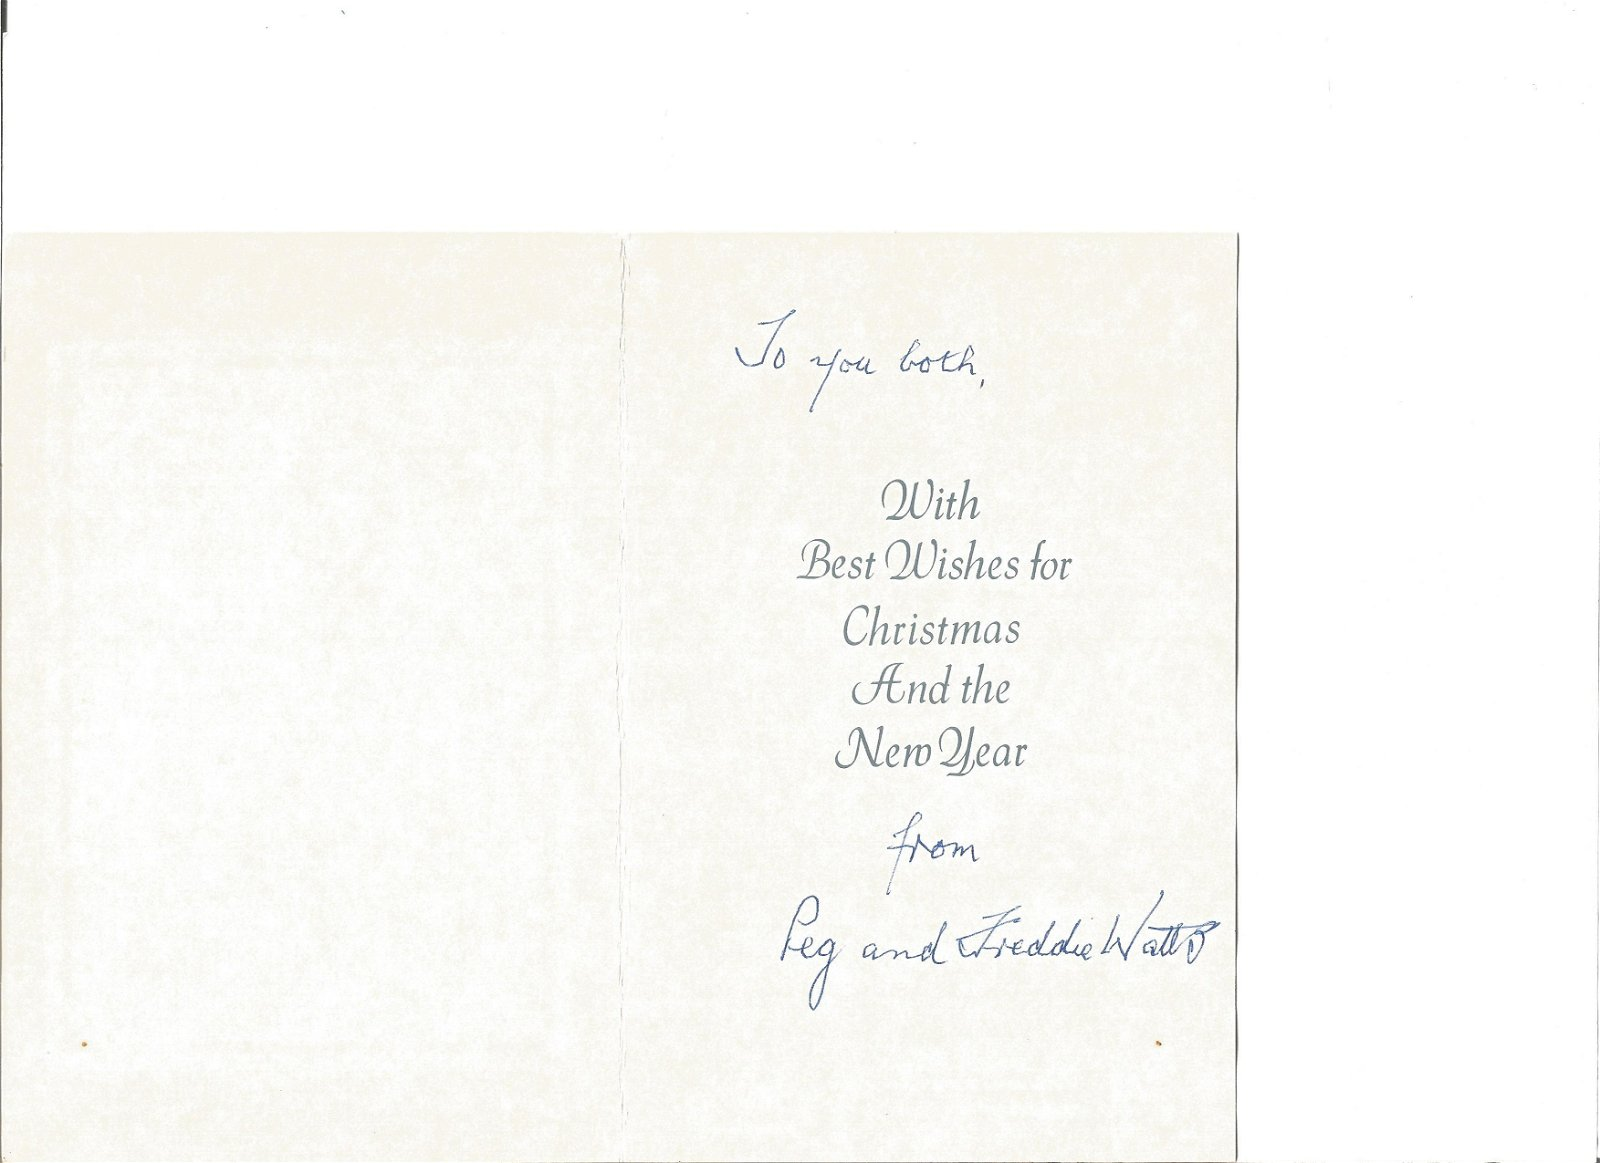 WW2 617 Sqn Freddie Watts signed Christmas card to 617